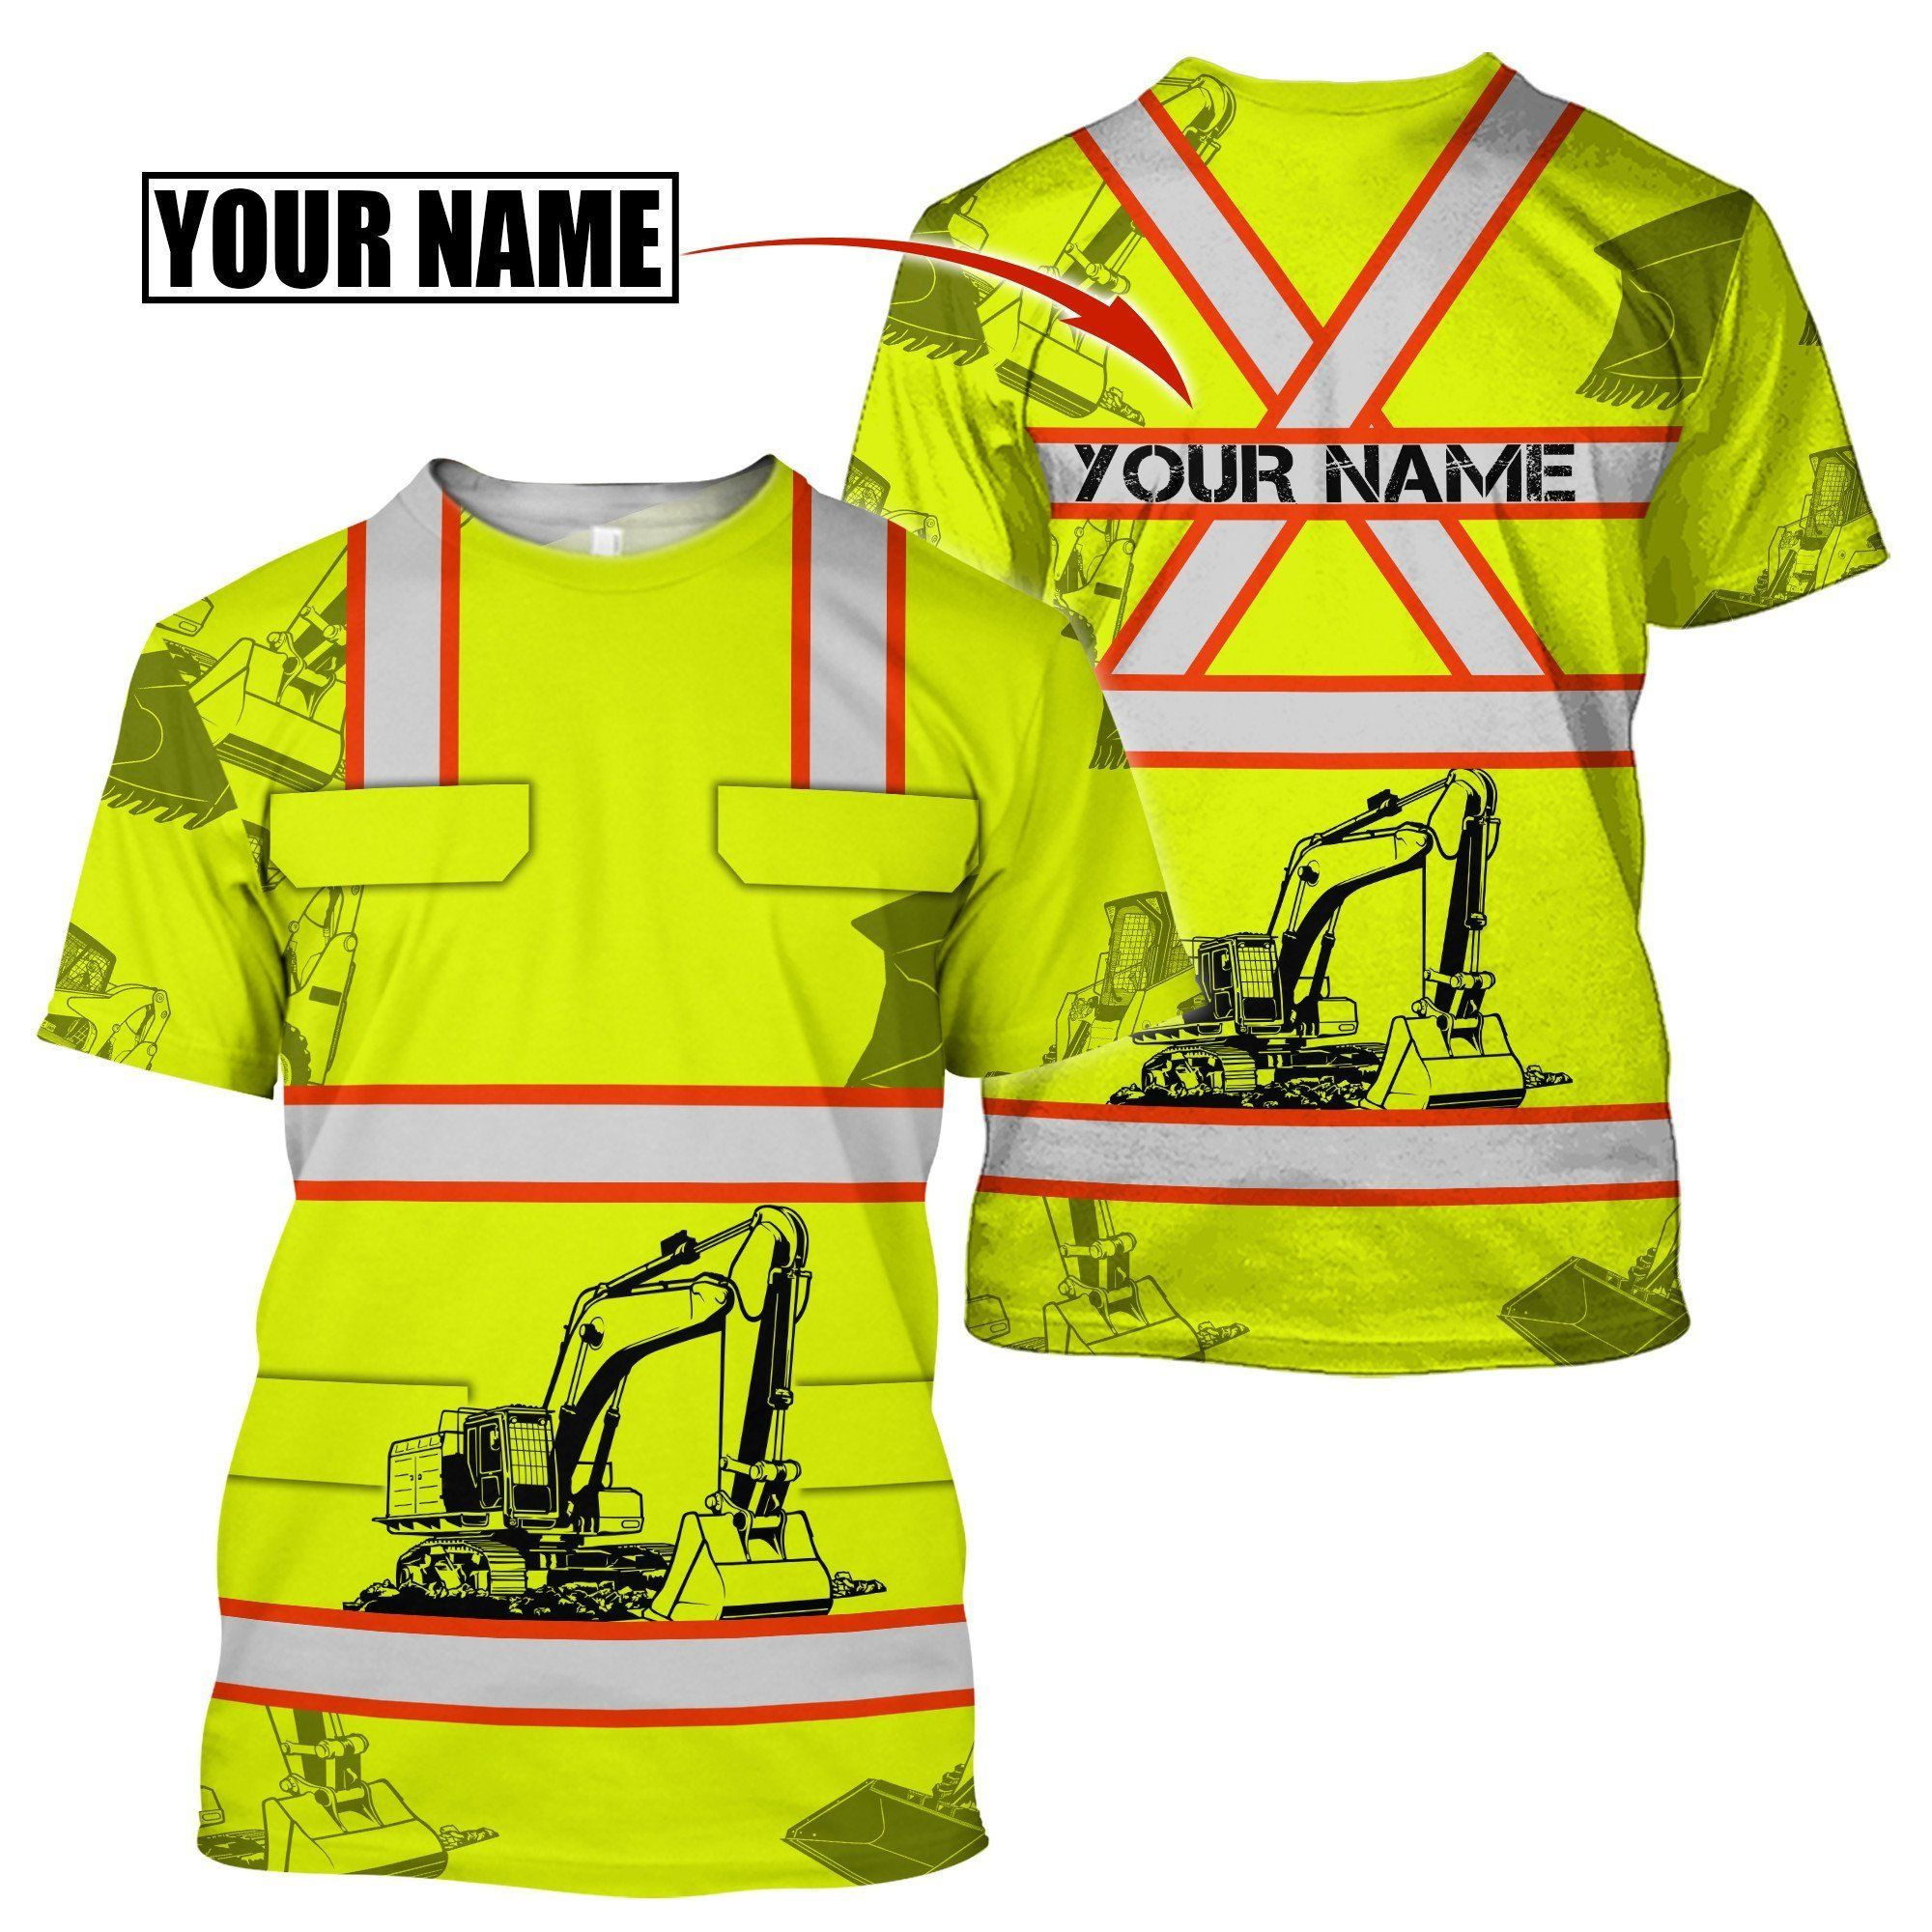 Customize Name Heavy Equipment Operator 3D All Over Printed Unisex Shirt - T-Shirt / 4XL